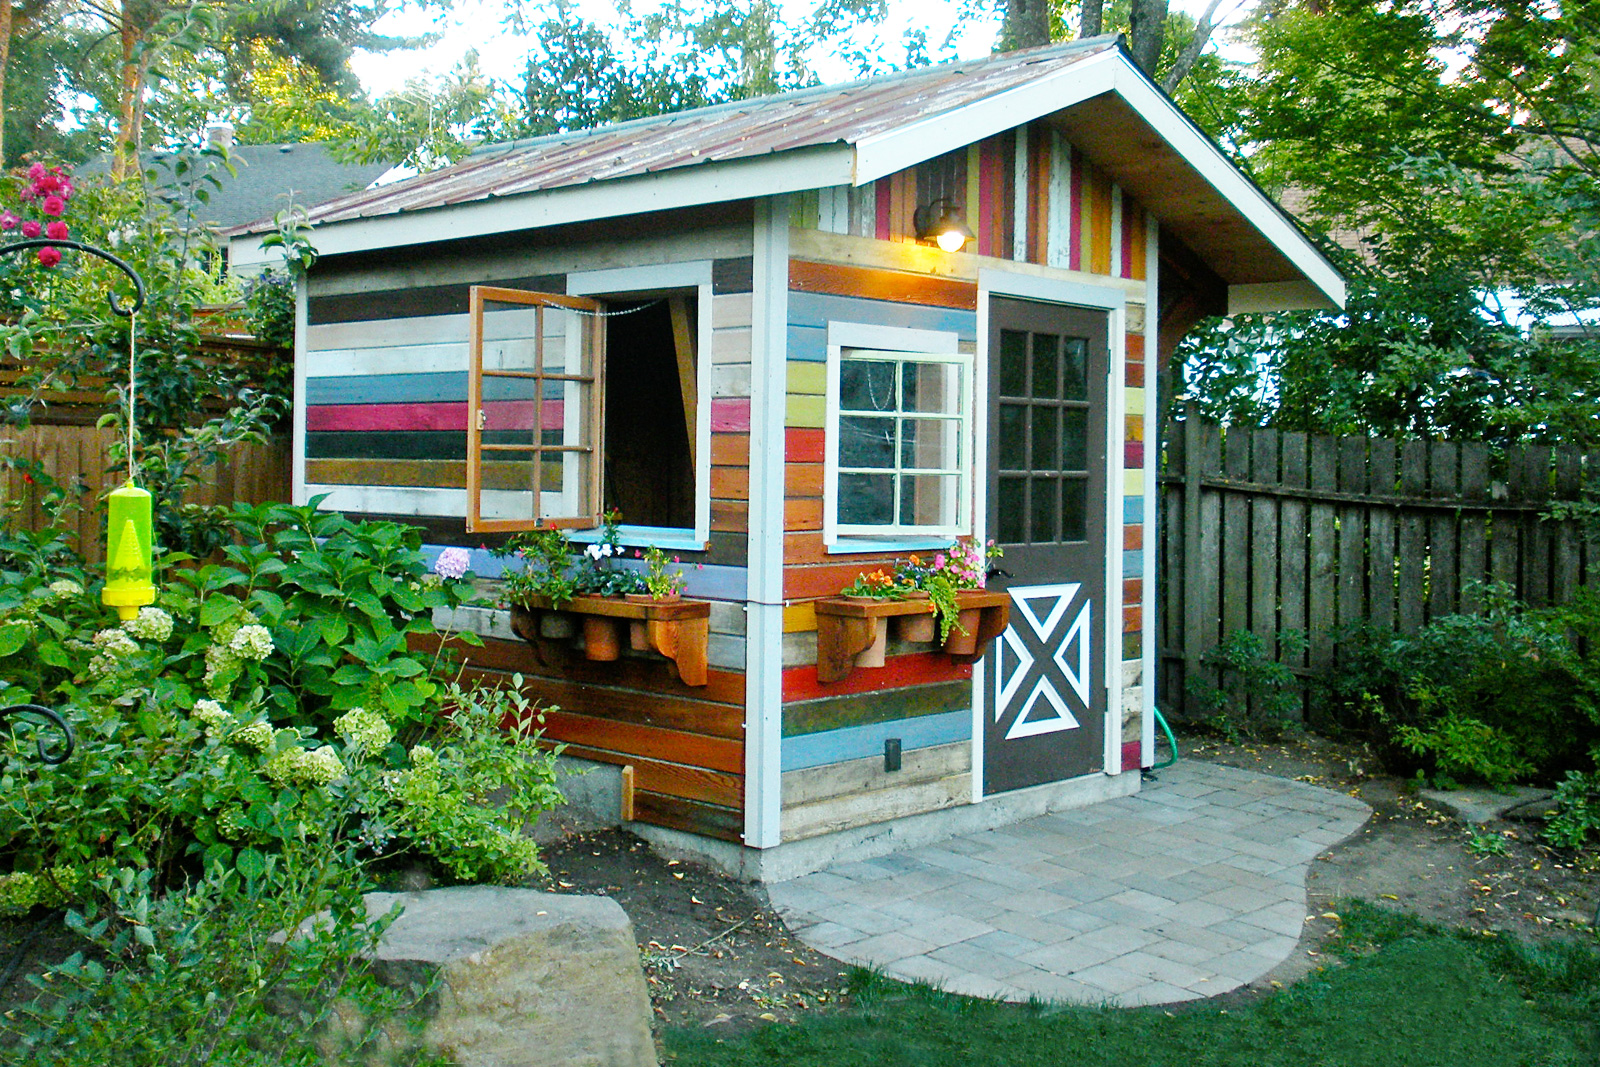 Livable Sheds Cost Of Building A Shed Kits Diy Electrical Wiring